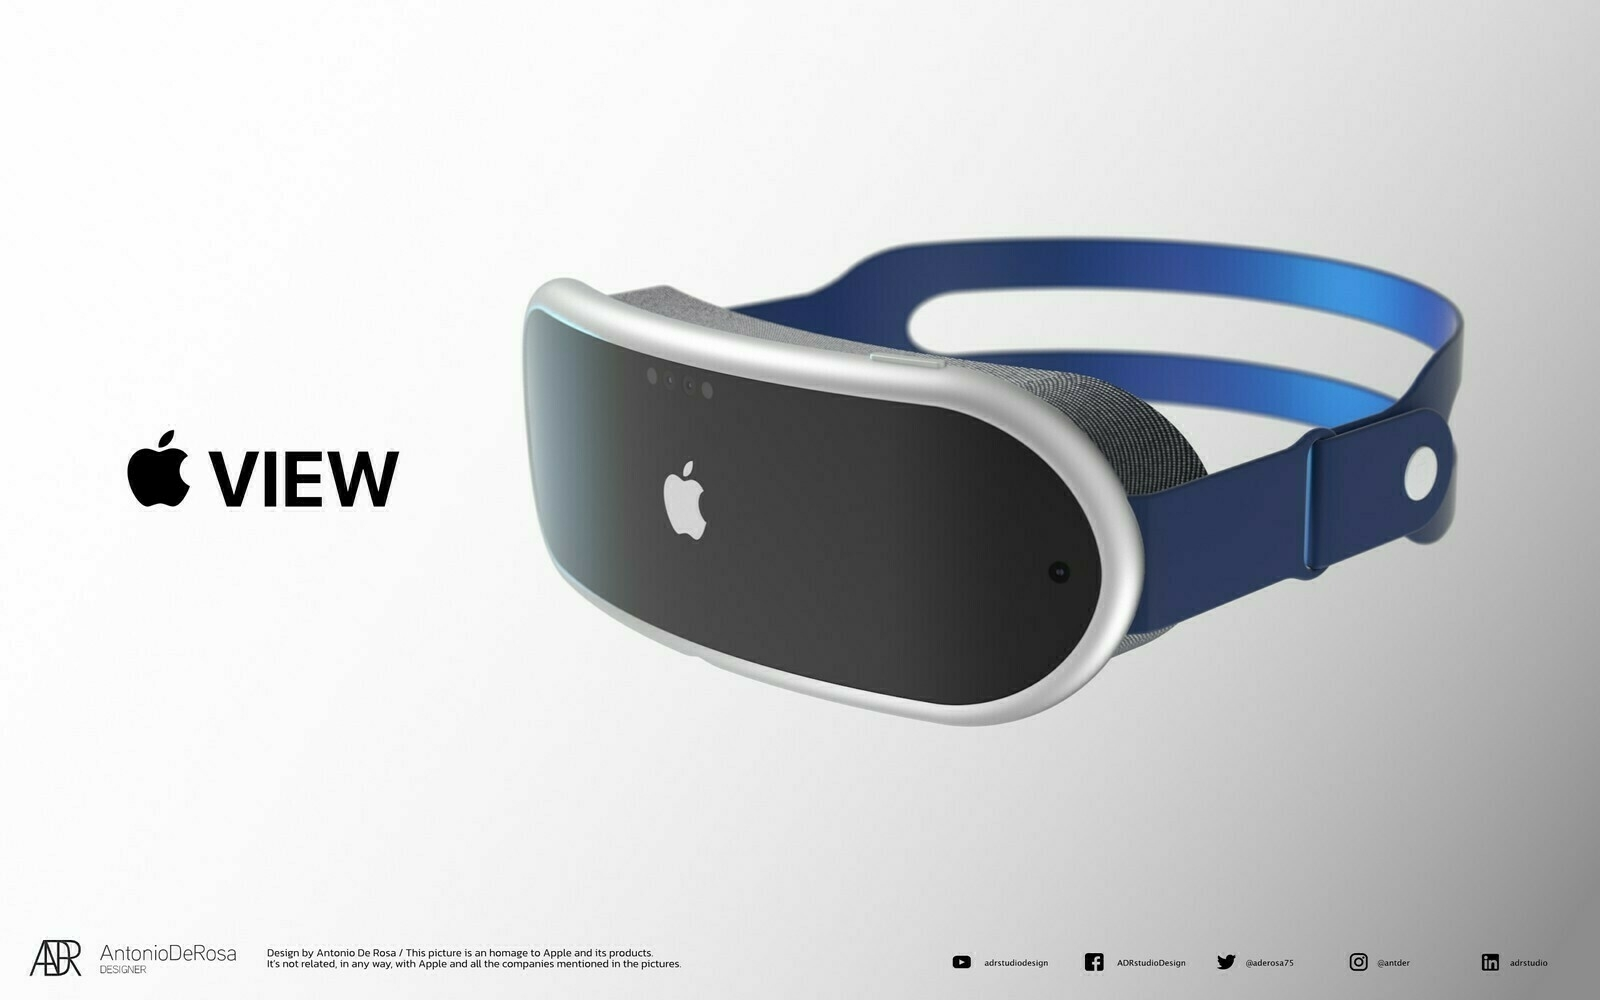 A mockup of Apple's VR headset based of rumours